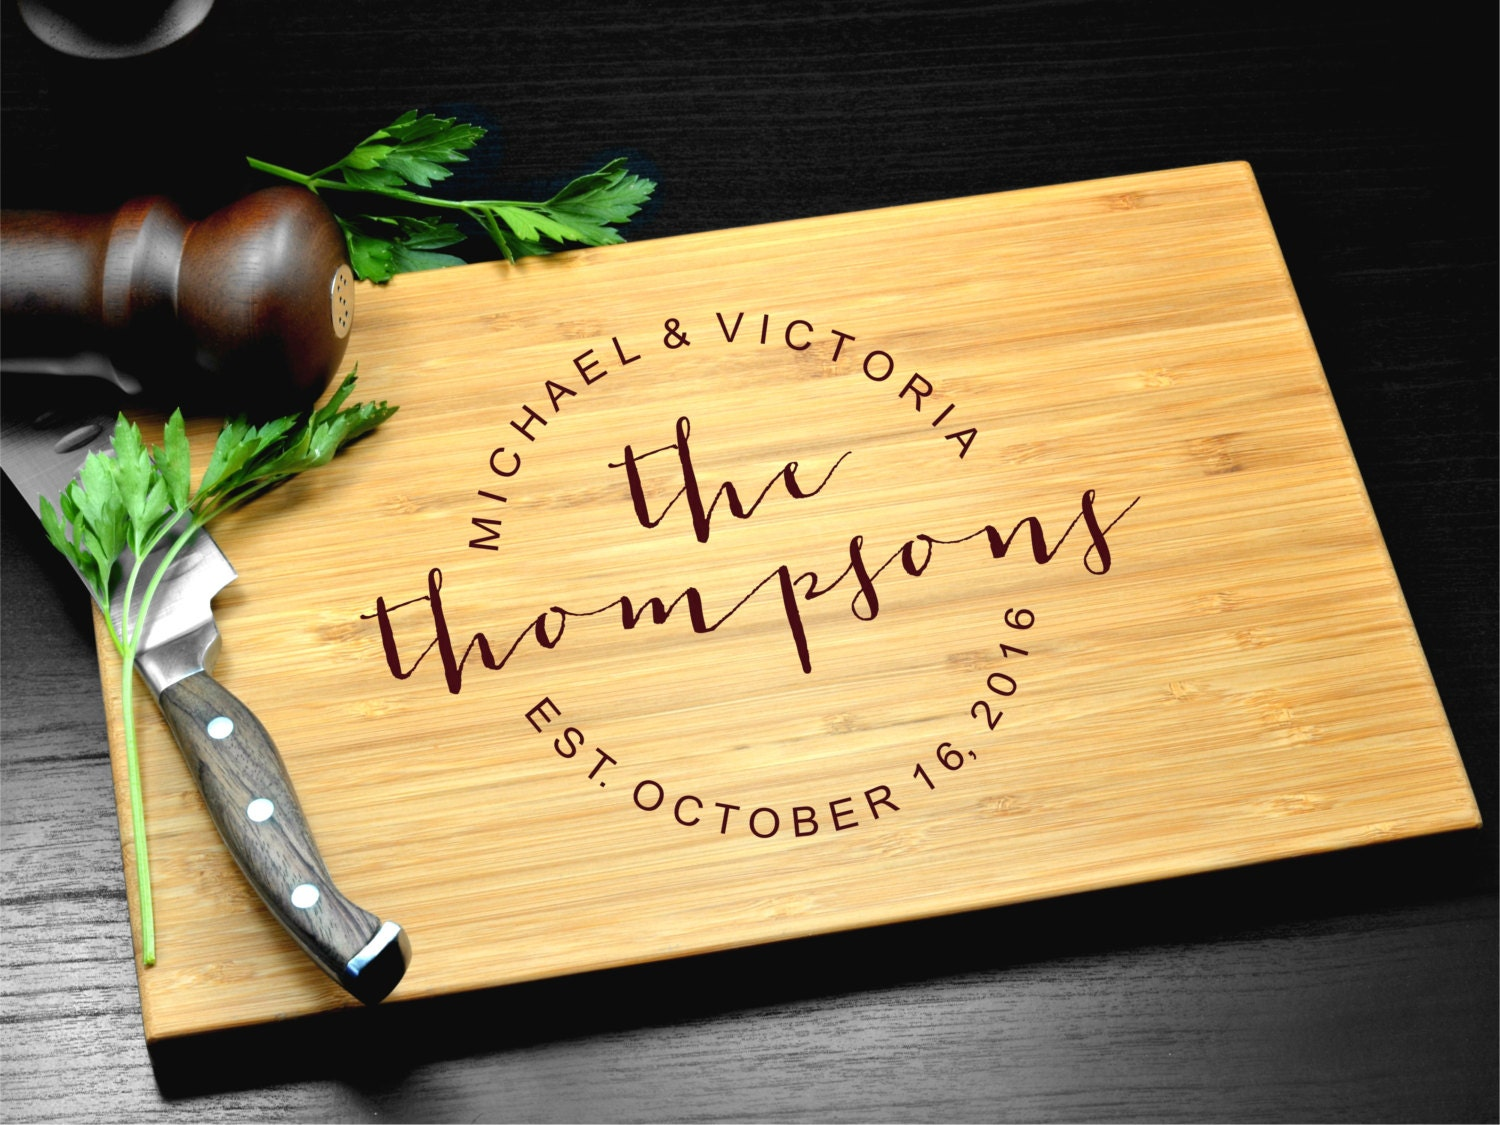 Wedding Gift Ideas For Close Friends: Custom Cutting Board-Engraved Cutting Board Personalized